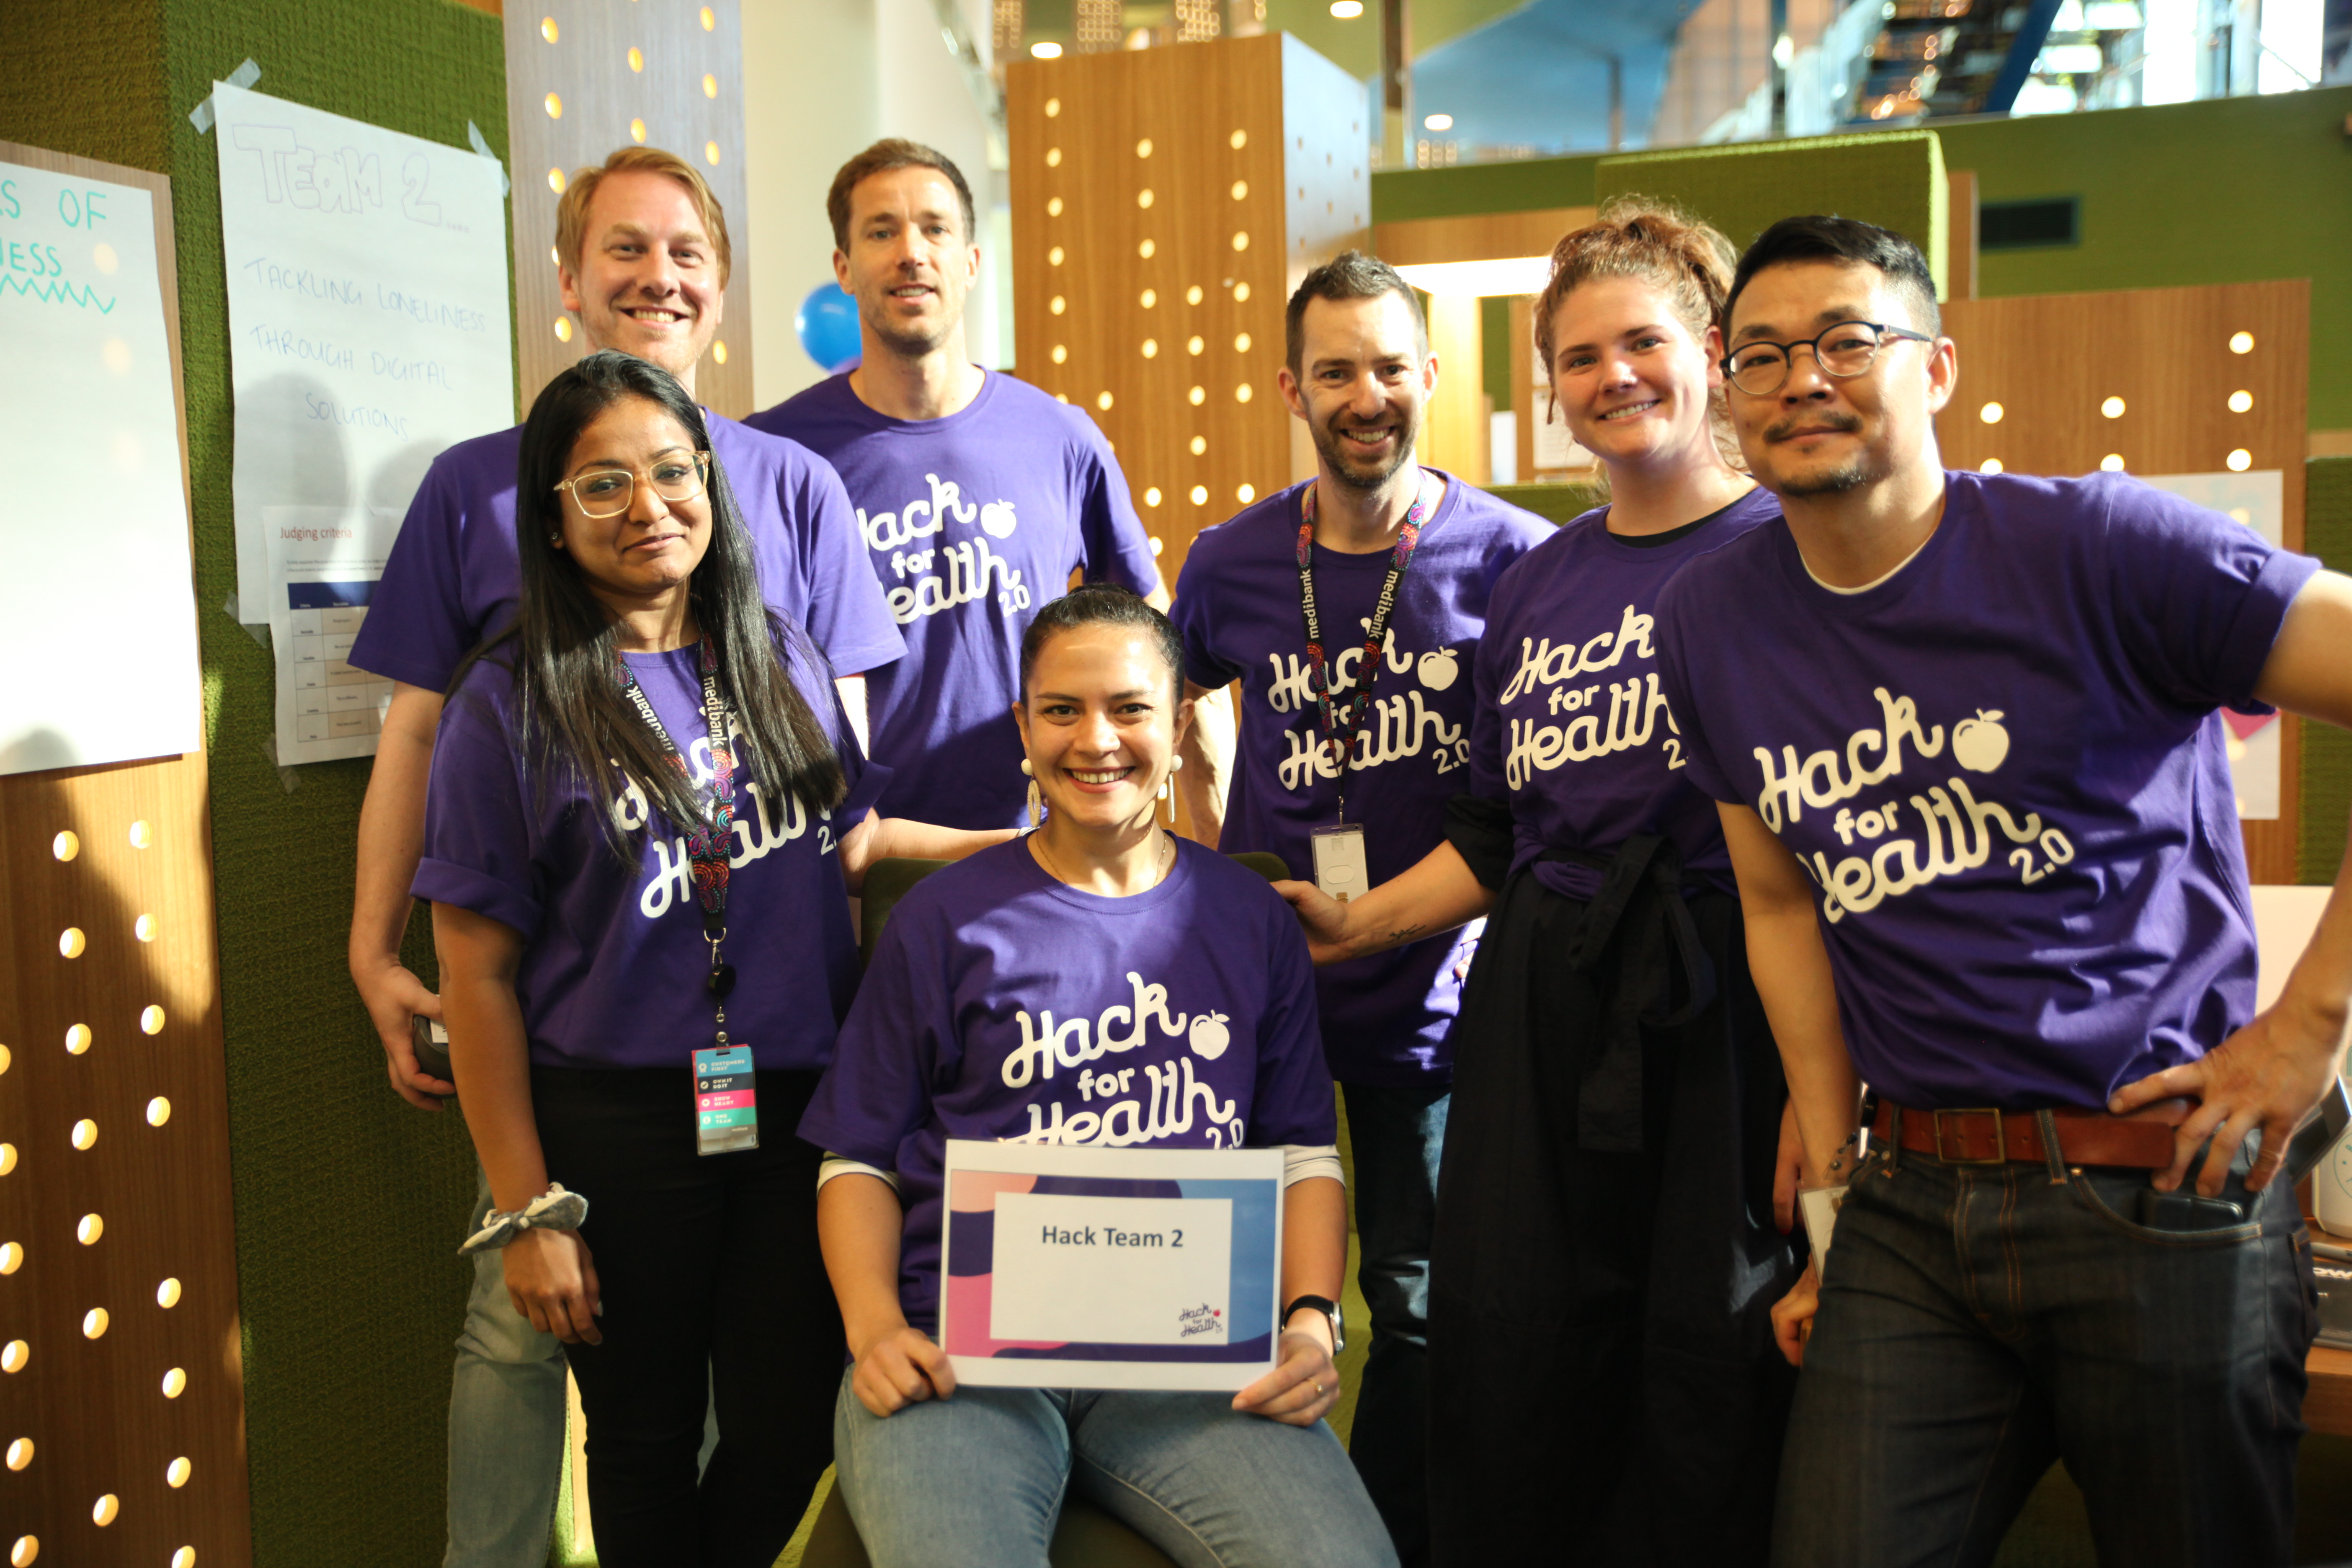 Hack for Health 19 Community2.0 team